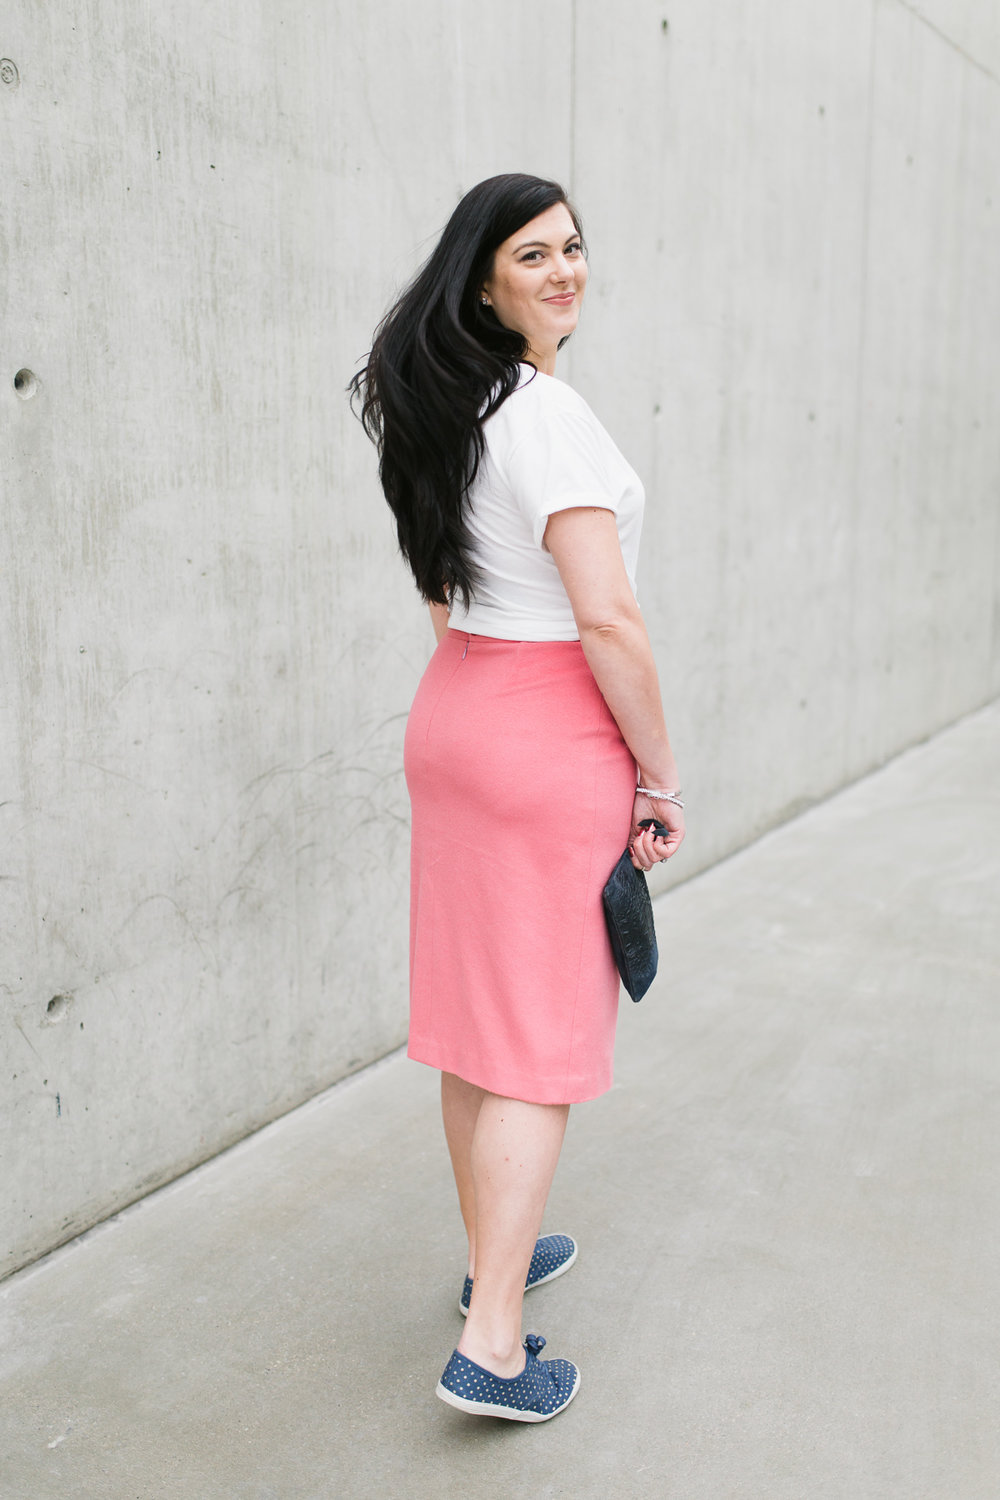 AN_PnP_Fashion-PinkskirtCasual014.jpg